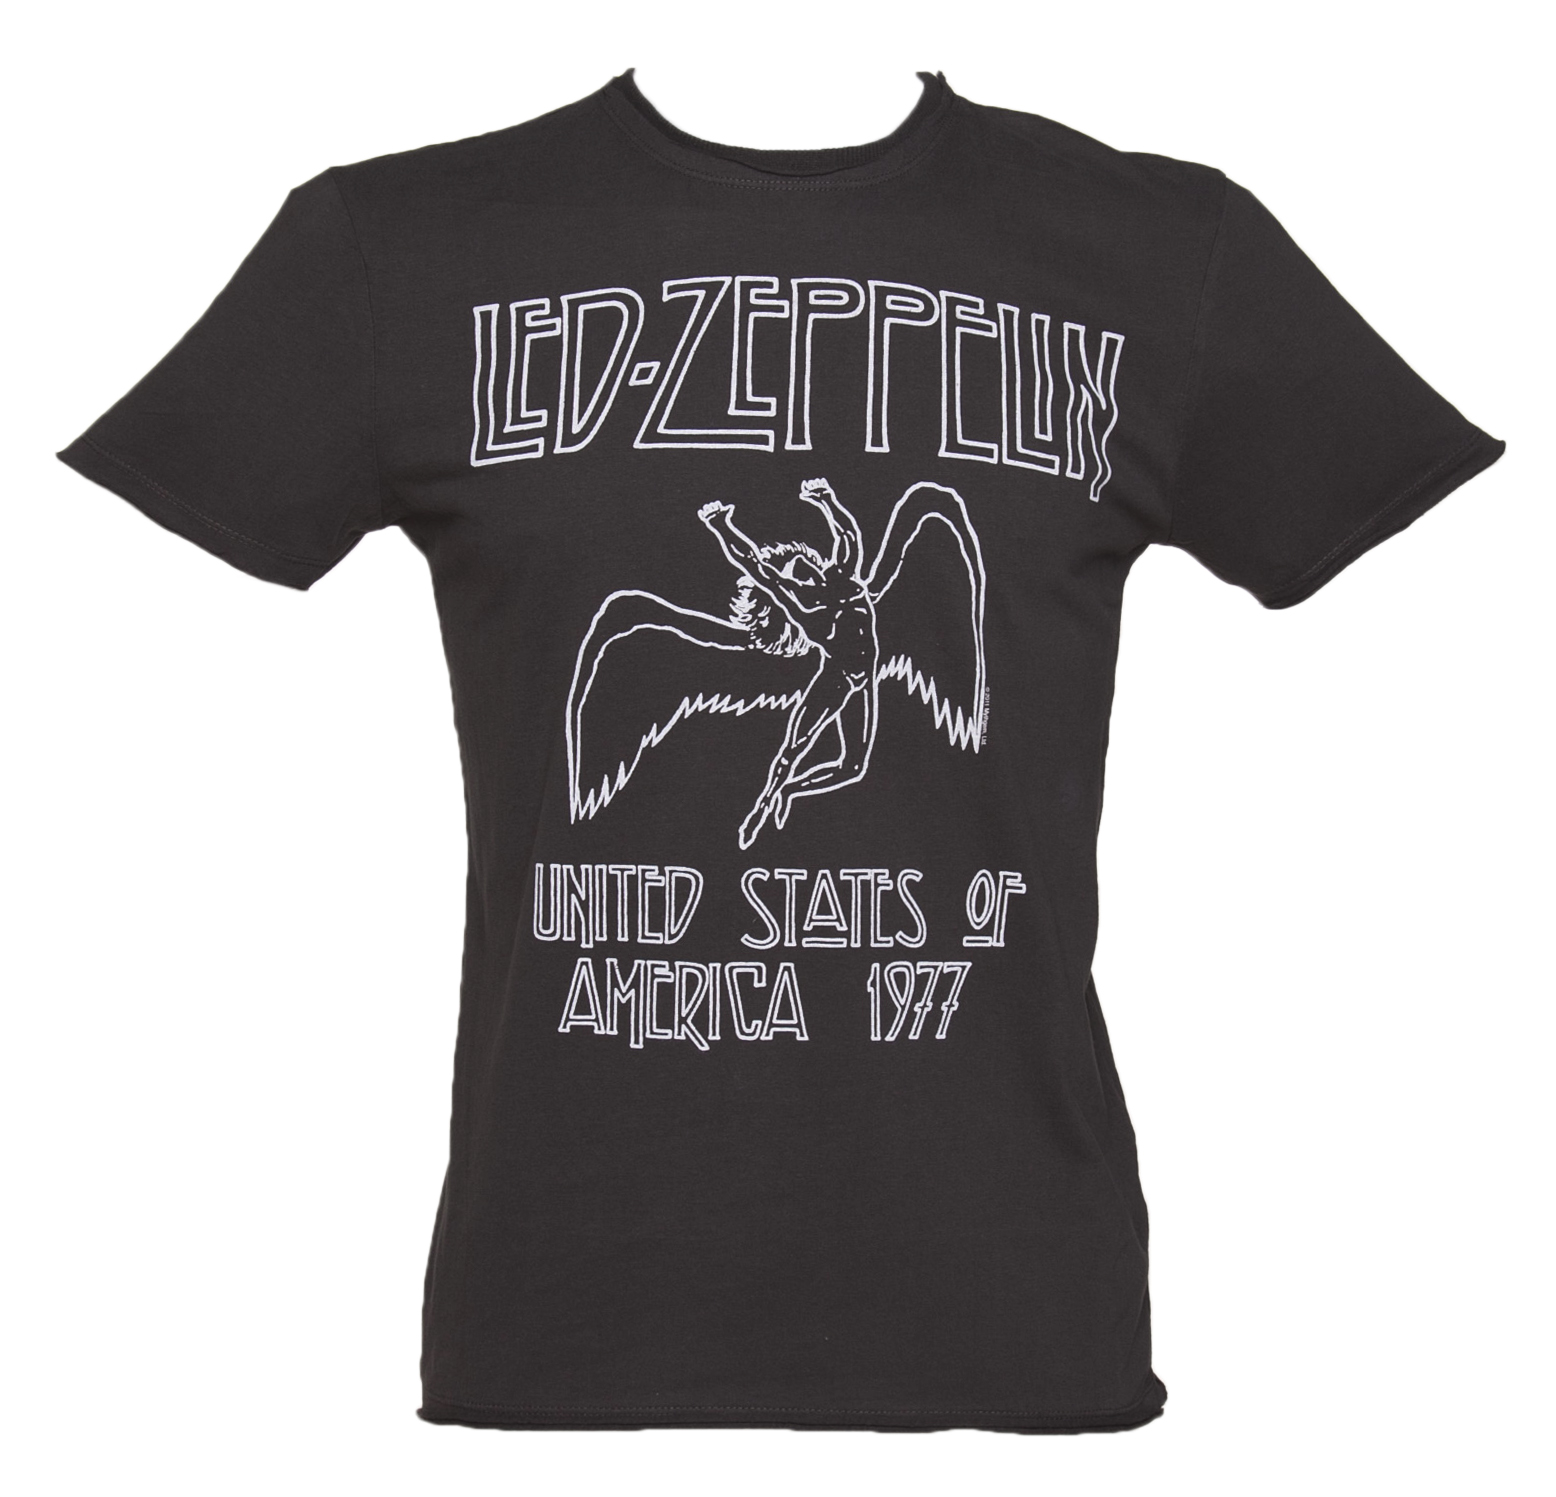 "The Led Zeppelin Stockholm T-Shirt lets fans celebrate the European tour. The tee shirt features the band members along with, ""Stockholm, Sweden Feb. 26 European Tour "". The Led Zeppelin 2-Sided Legends T-shirt is a two sided tee shirt with a zeppelin and Led Zeppelin on the front of the t-shirt and the back of the tee shirt /5()."